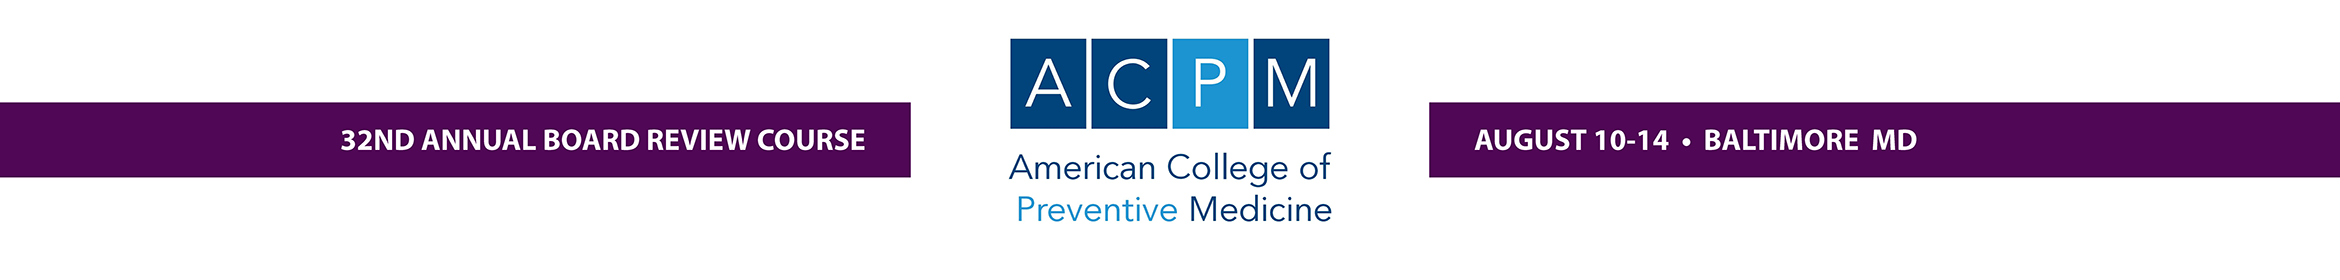 ACPM Board Review Course 2019 Main banner